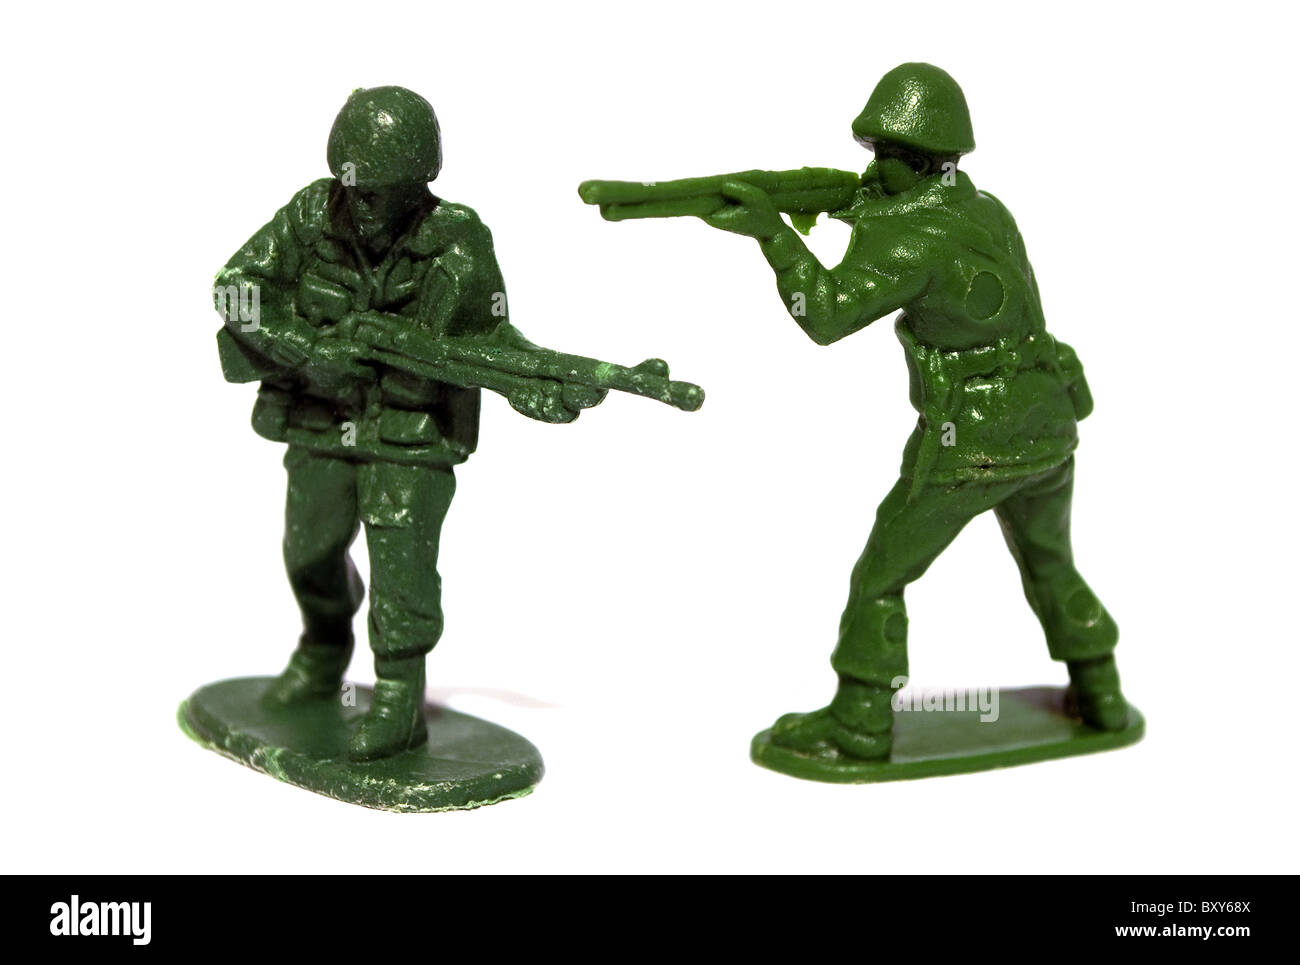 two plastic toy soldiers on a white background - Stock Image